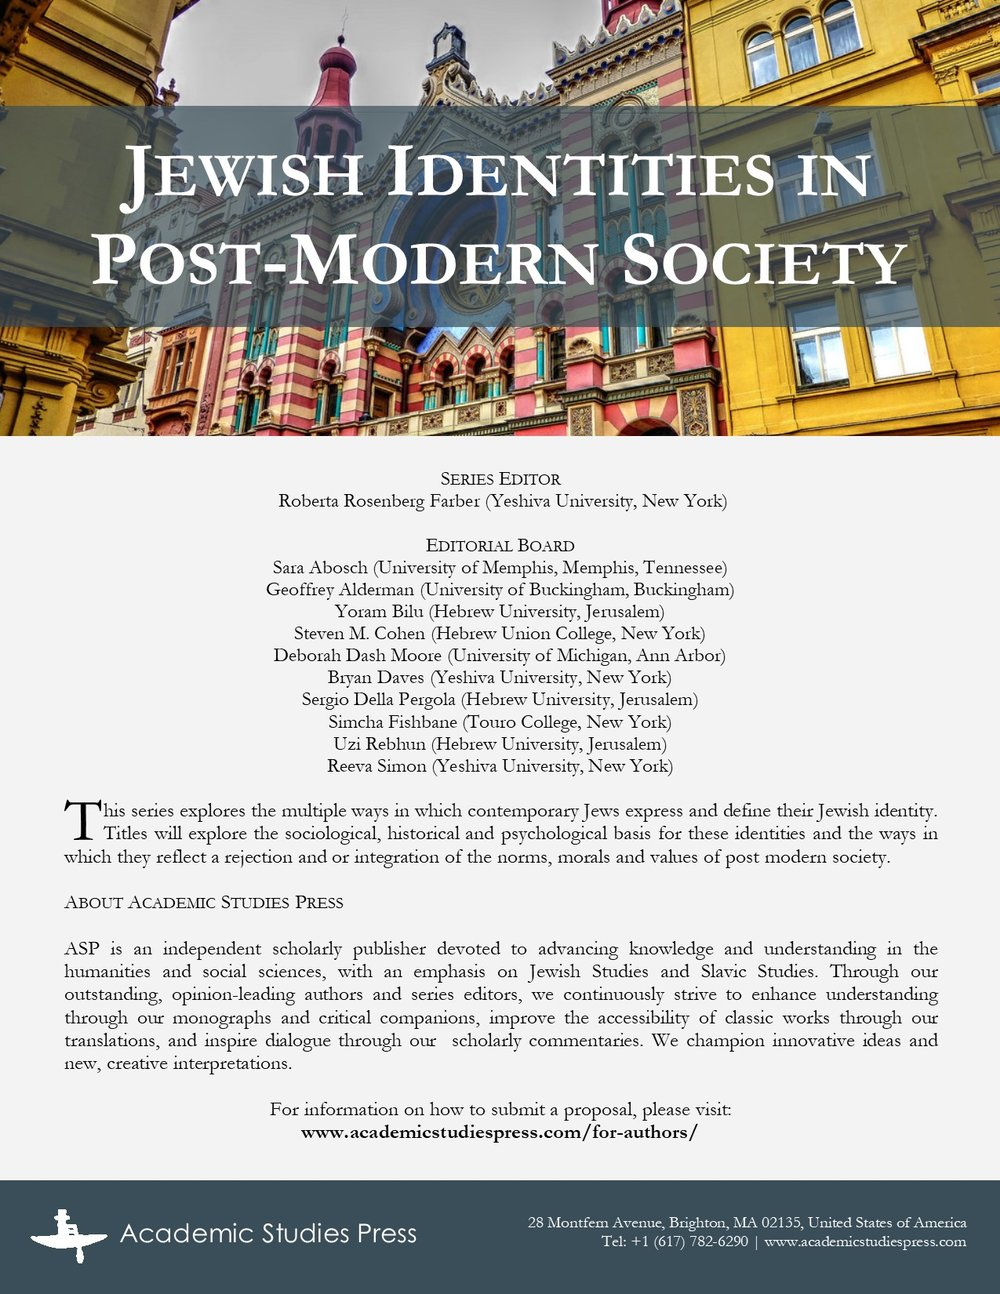 Jewish Identities in Post-Modern Society Flyer.jpg